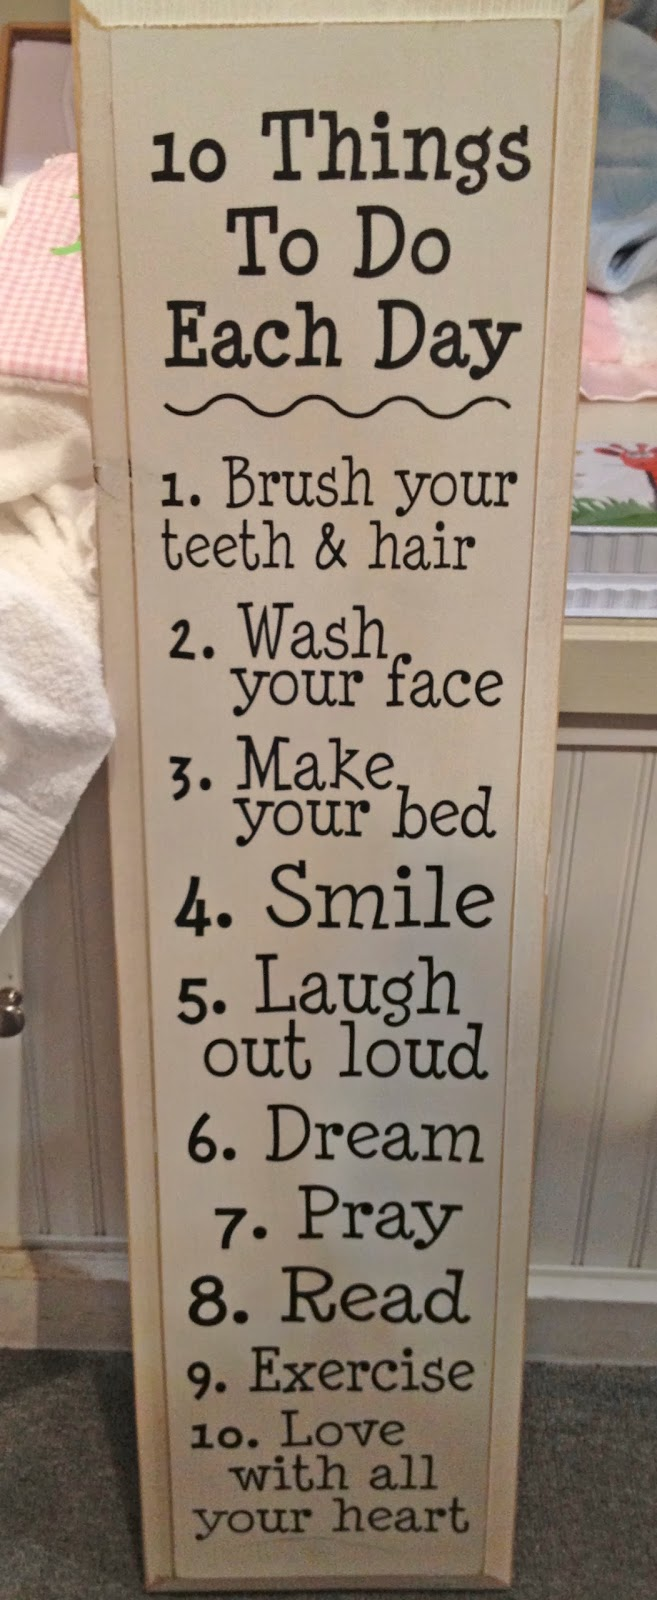 things to do with husband in bed